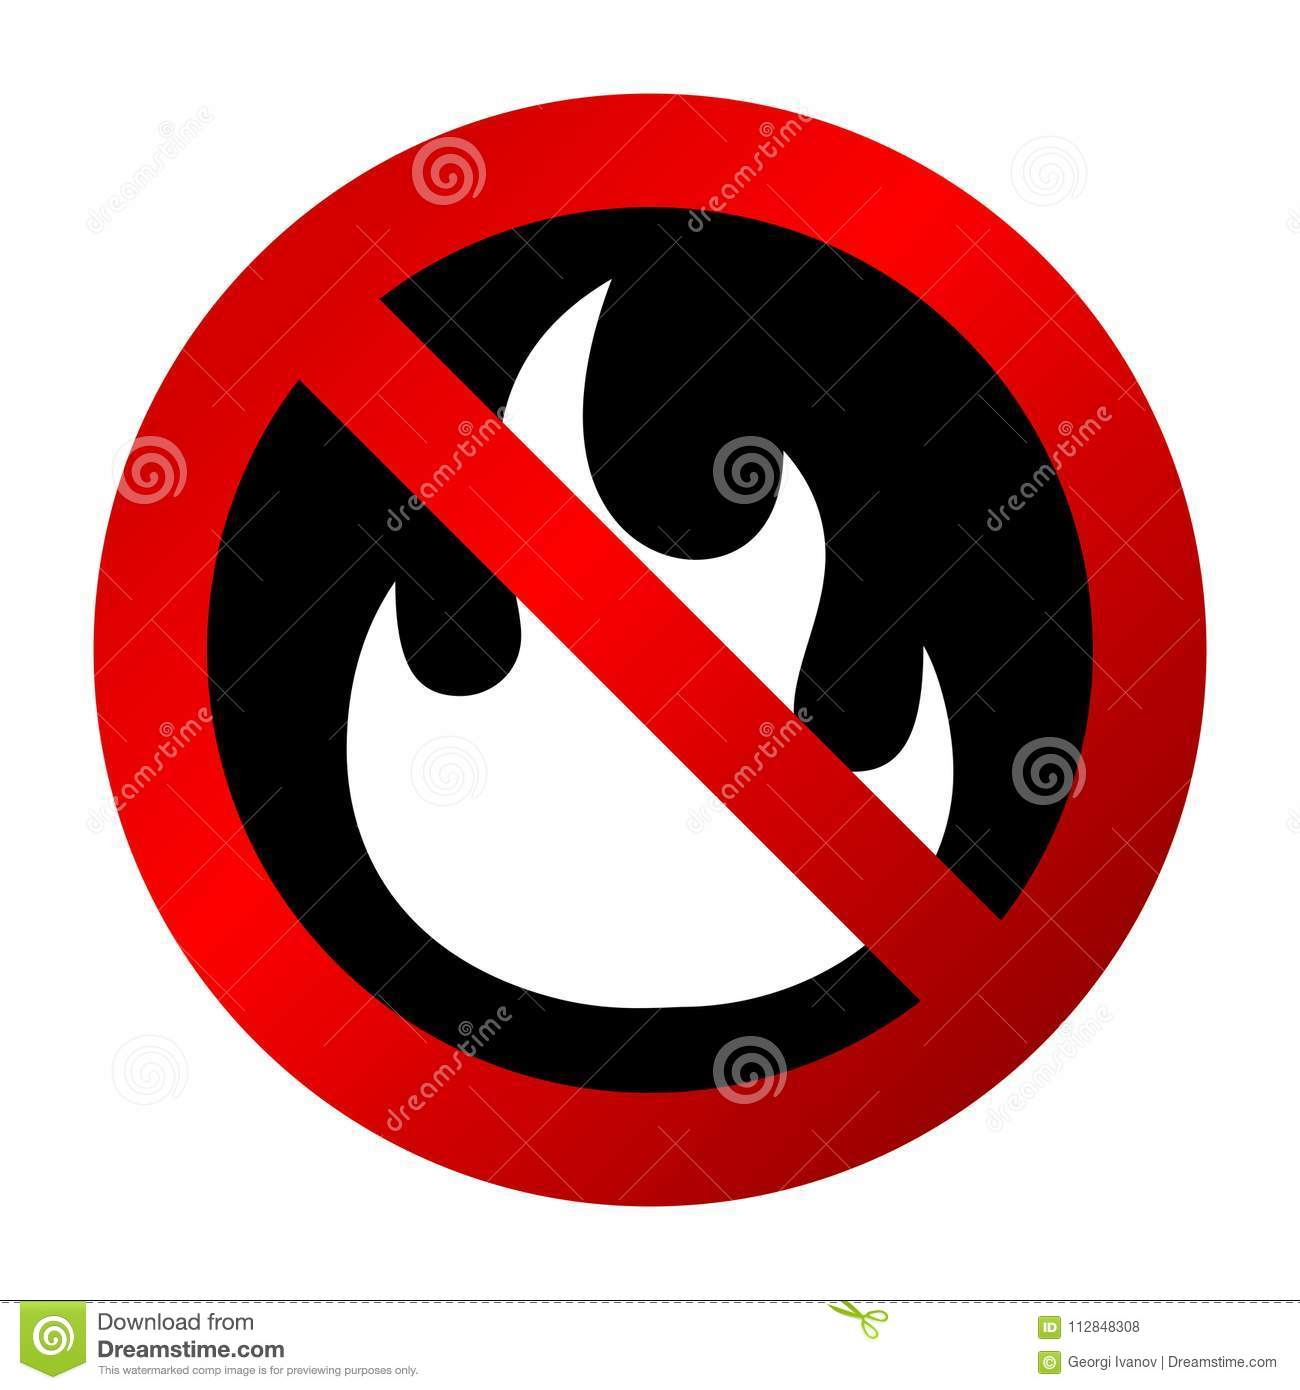 Simple, gradient `No fire` sign/icon. Red sign, white fire silhouette on black